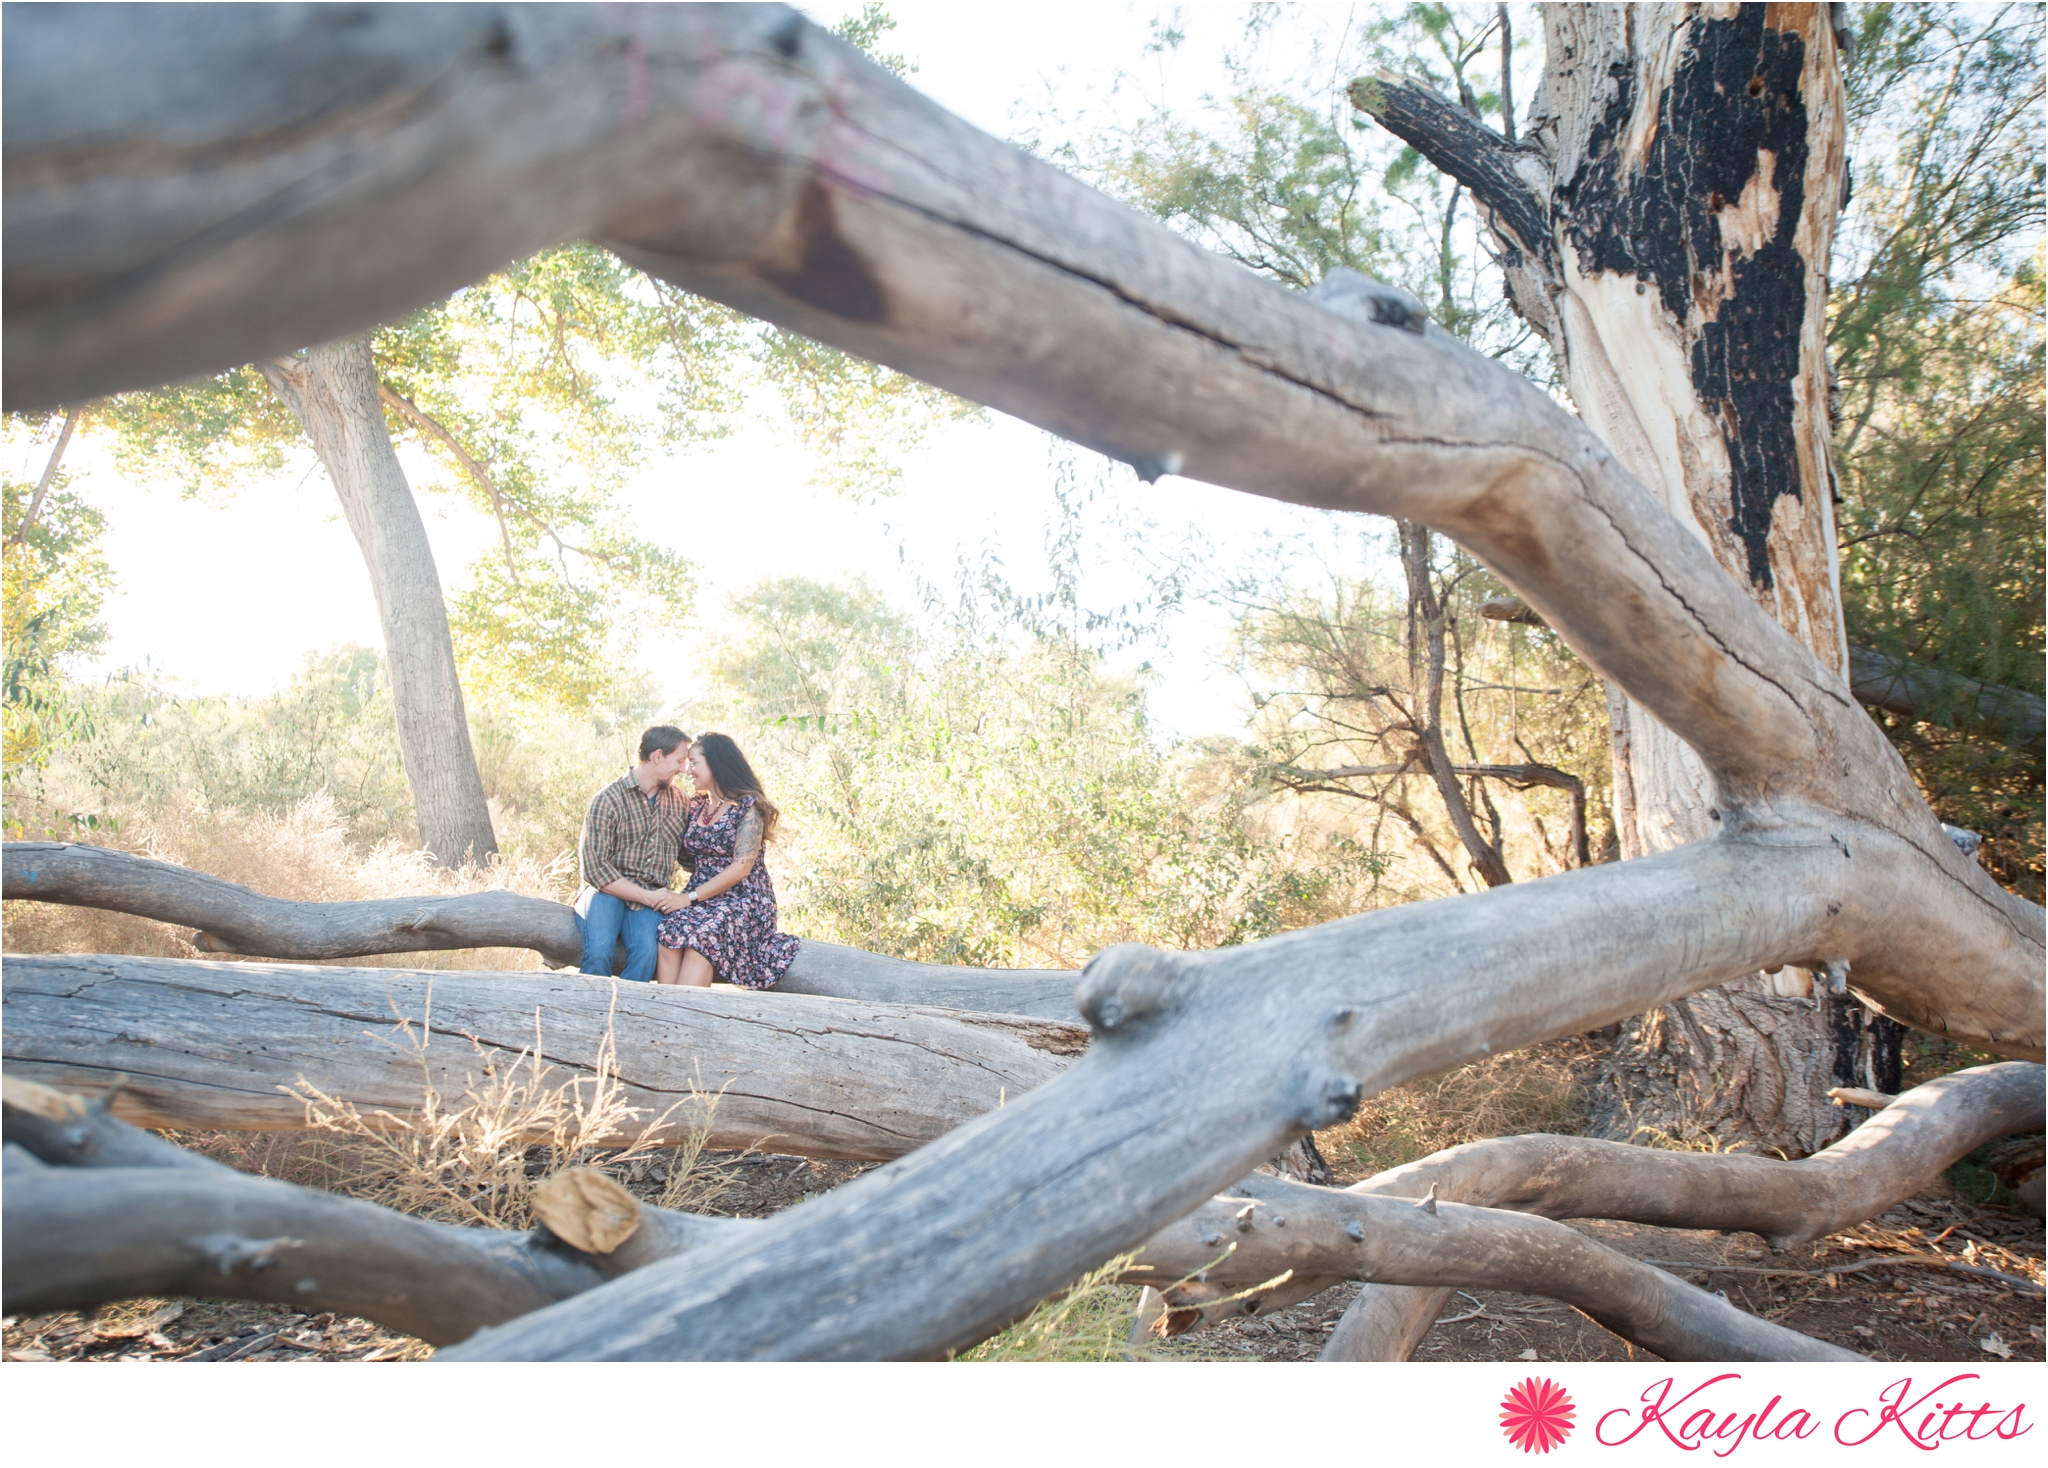 kayla kitts photography - ric and julian - engagement - albuquerque wedding photographer_0024.jpg